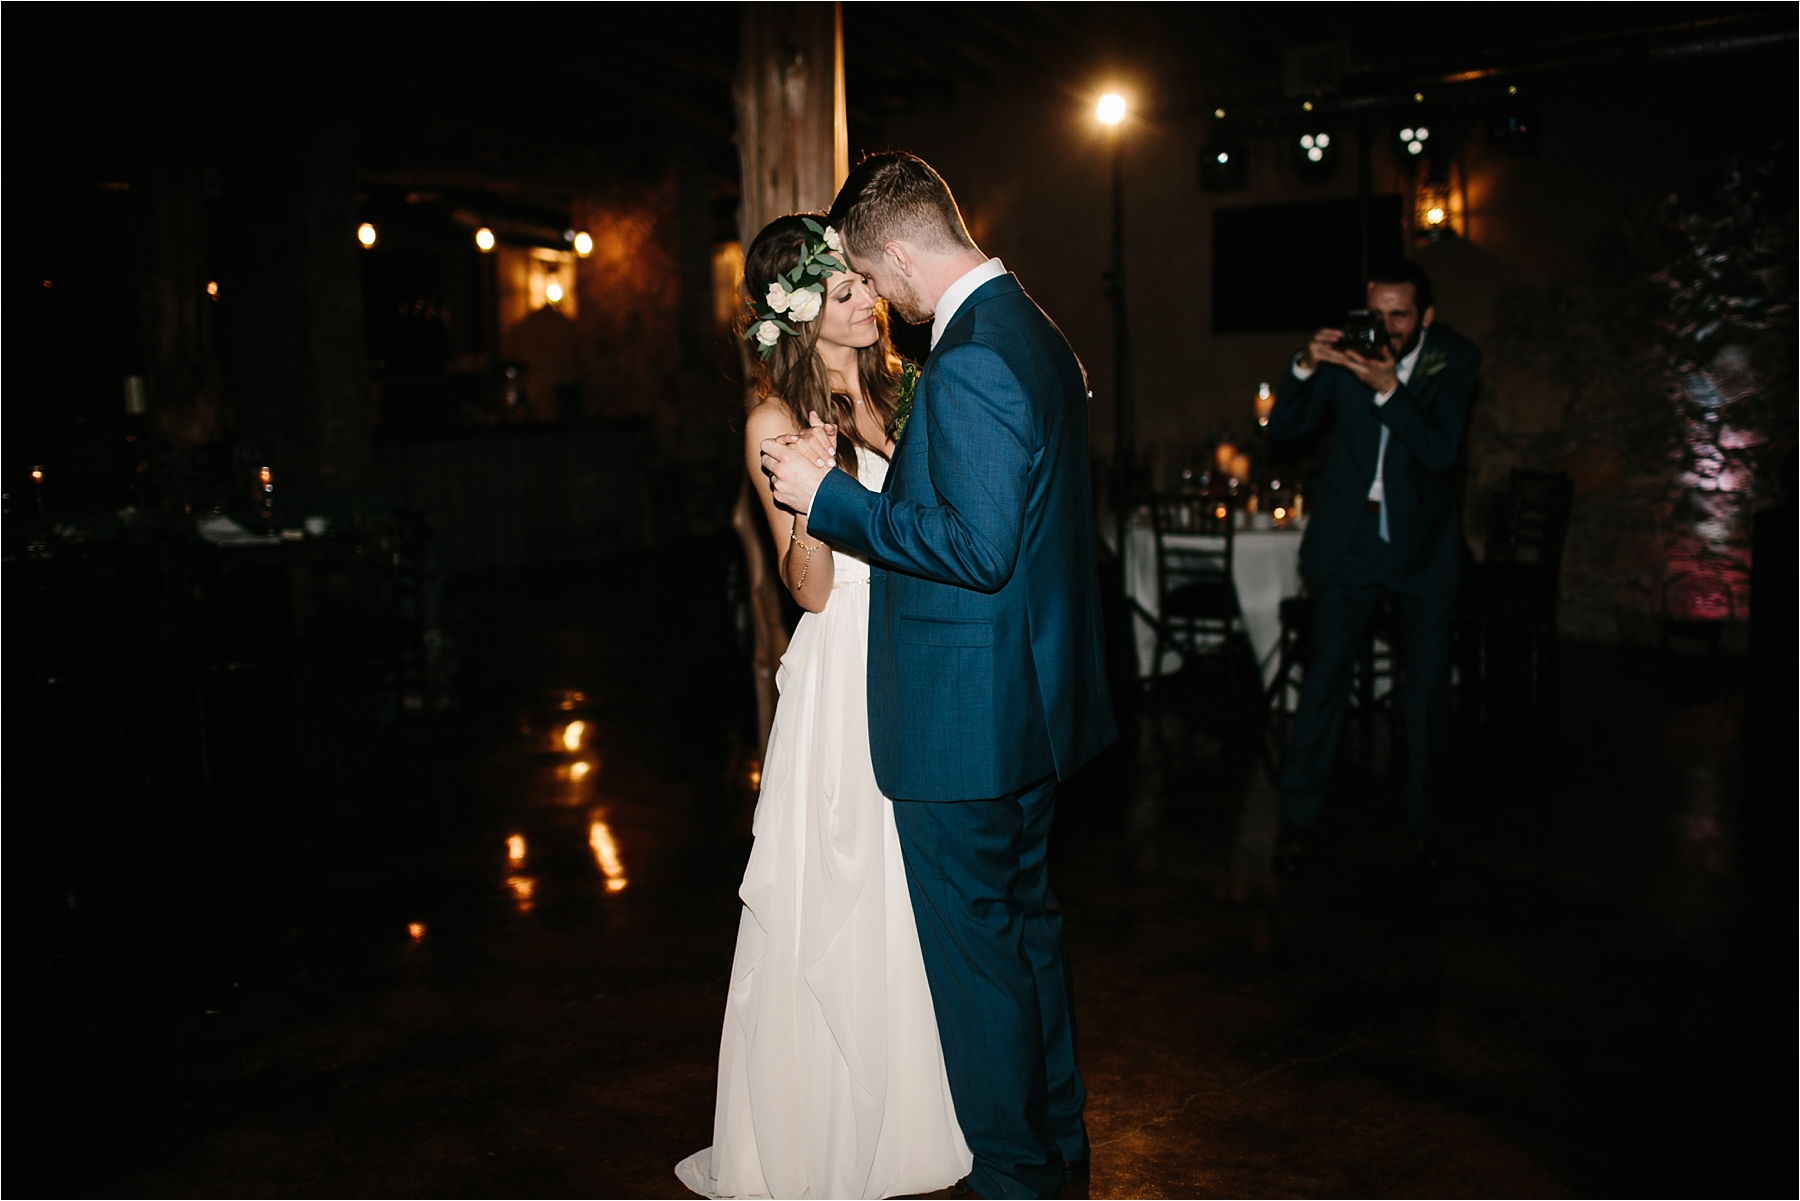 Lauren + Matt __ an intimate, emotional, blush pink, navy blue, and greenery toned wedding accents at the Brooks at Weatherford by North Texas Wedding Photographer Rachel Meagan Photography165